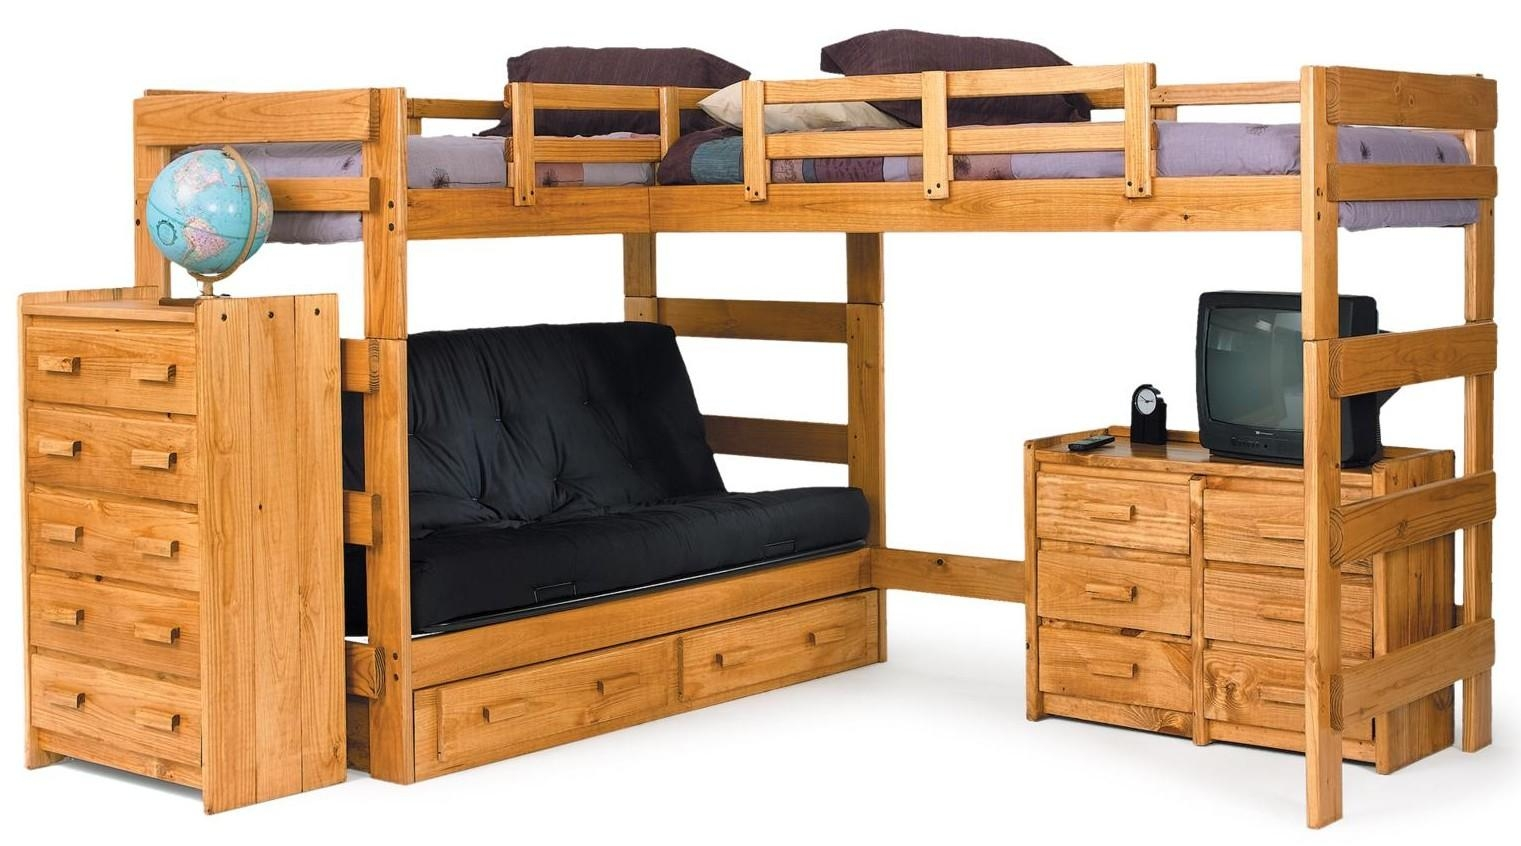 Bunk Bed With Couch — Mygreenatl Bunk Beds Inside Bunk Bed With Sofas Underneath (Image 8 of 20)